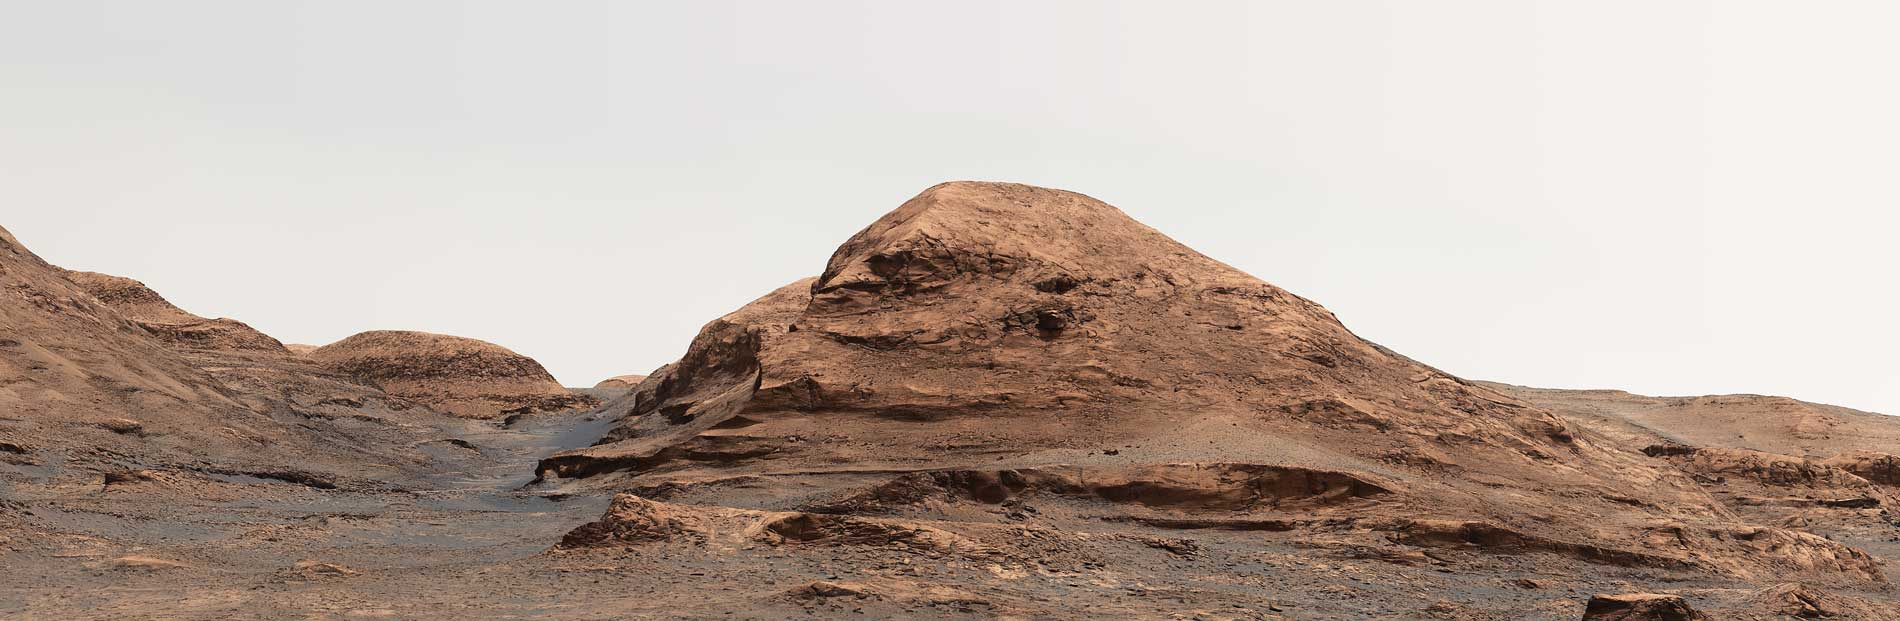 NASA Curiosity Team Appoints Martian Hill to Serve as Missionary 'Passage'